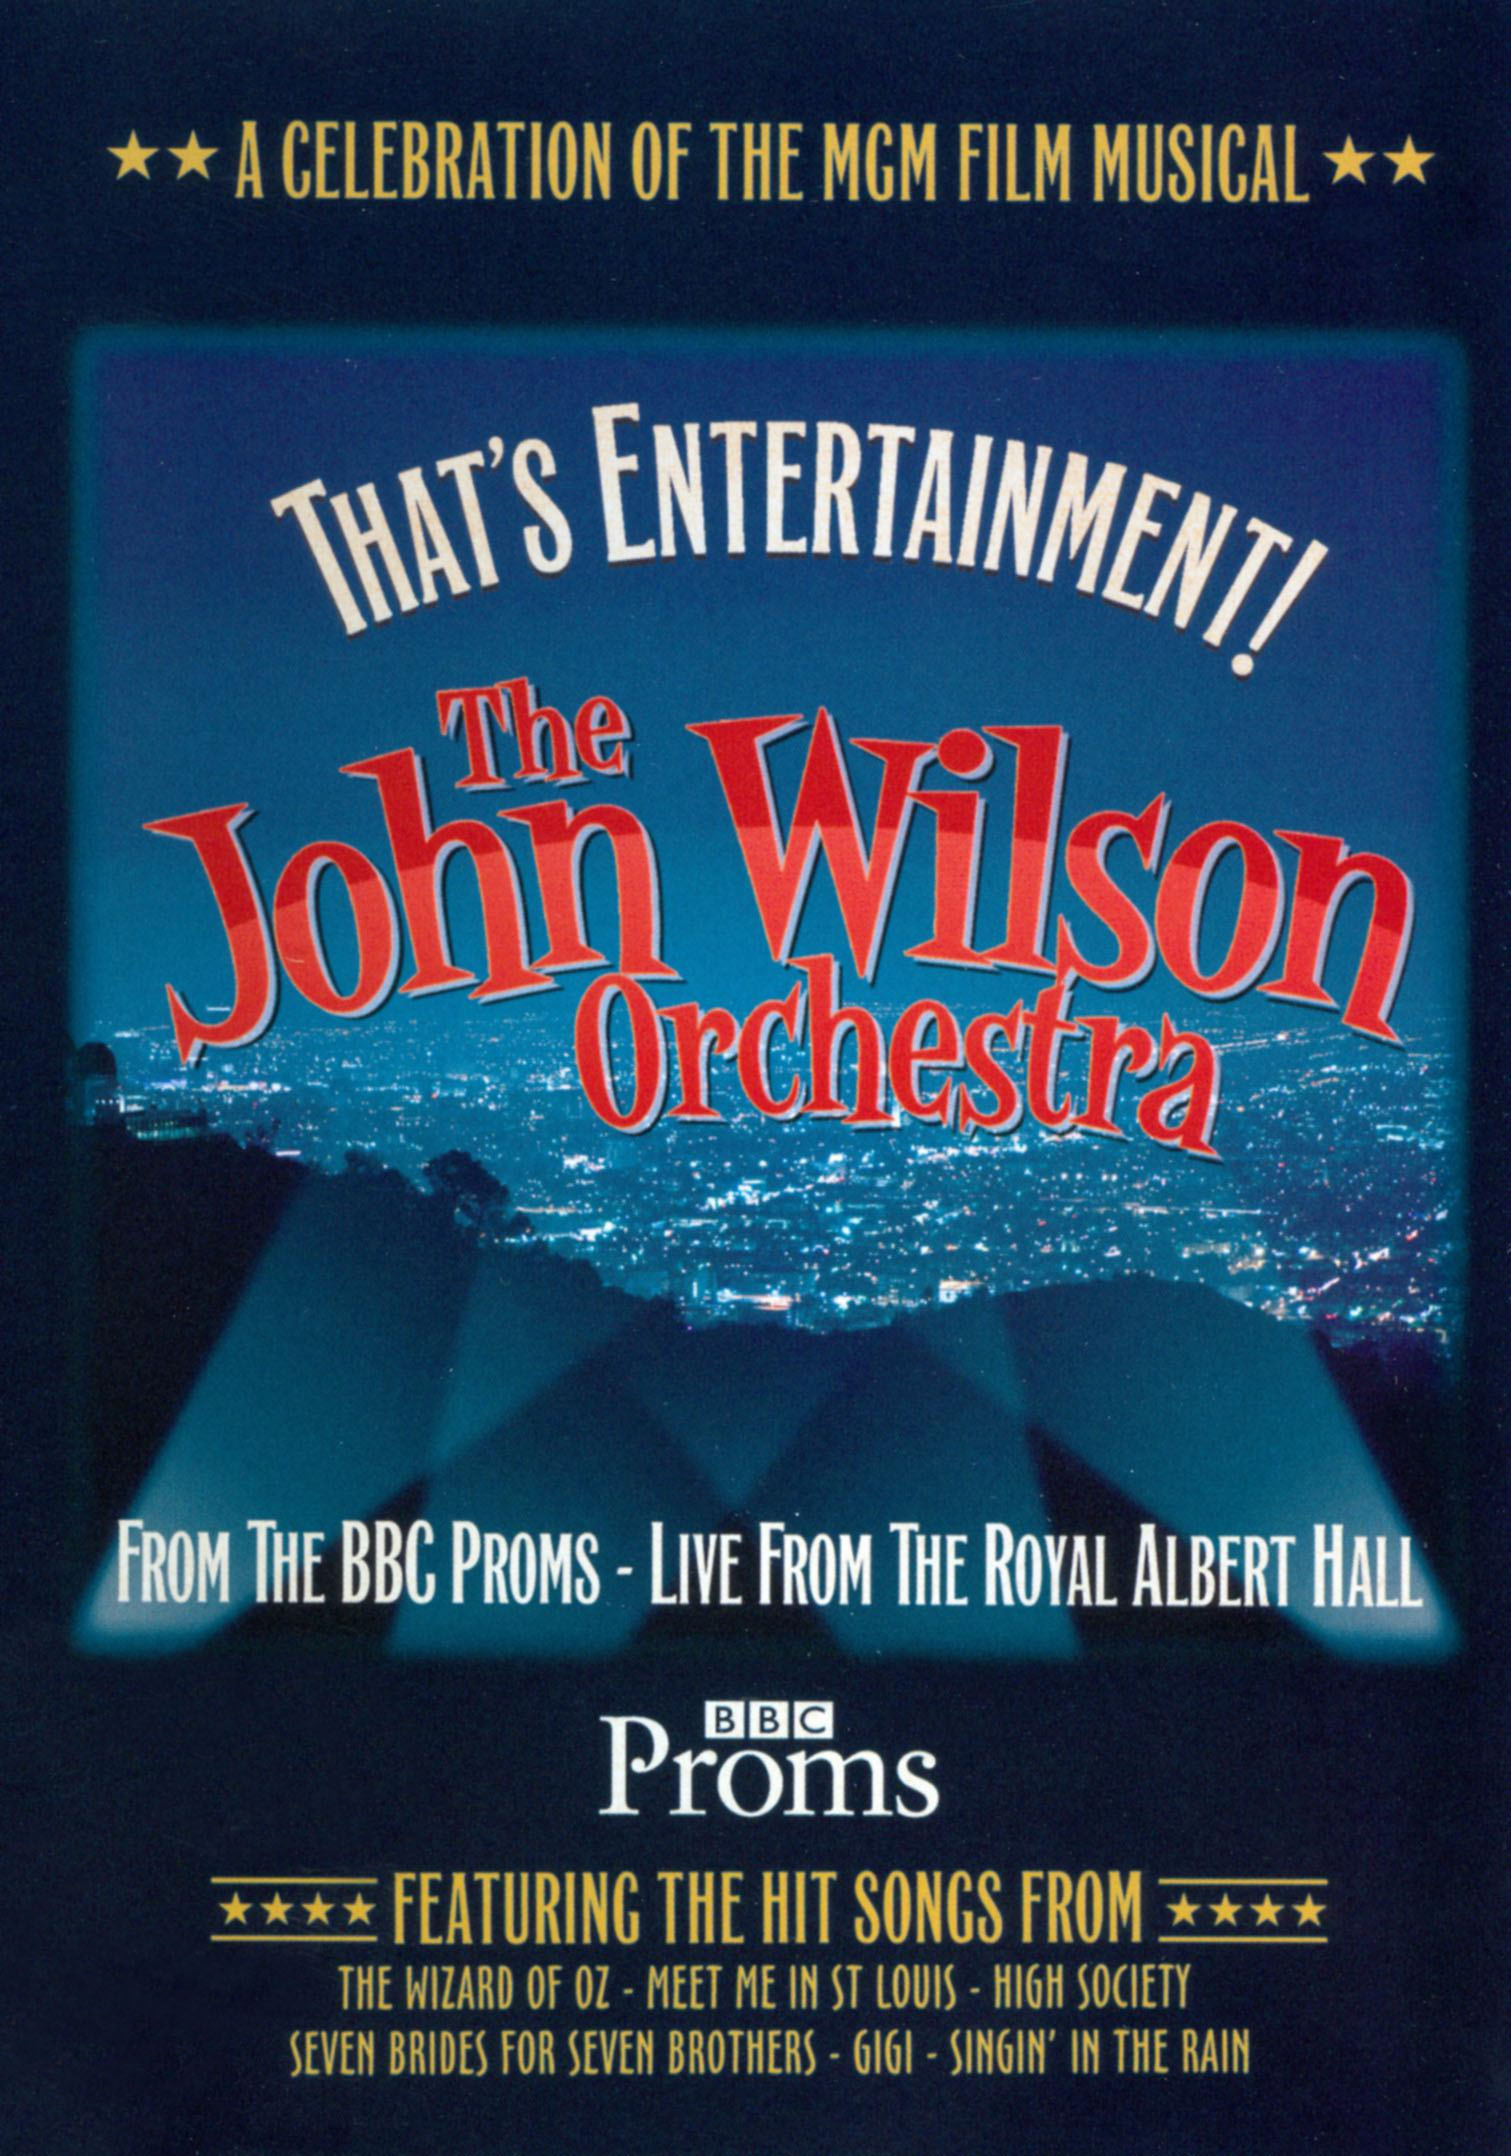 The John Wilson Orchestra: That's Entertainment! - A Celebration of the MGM Film Musical